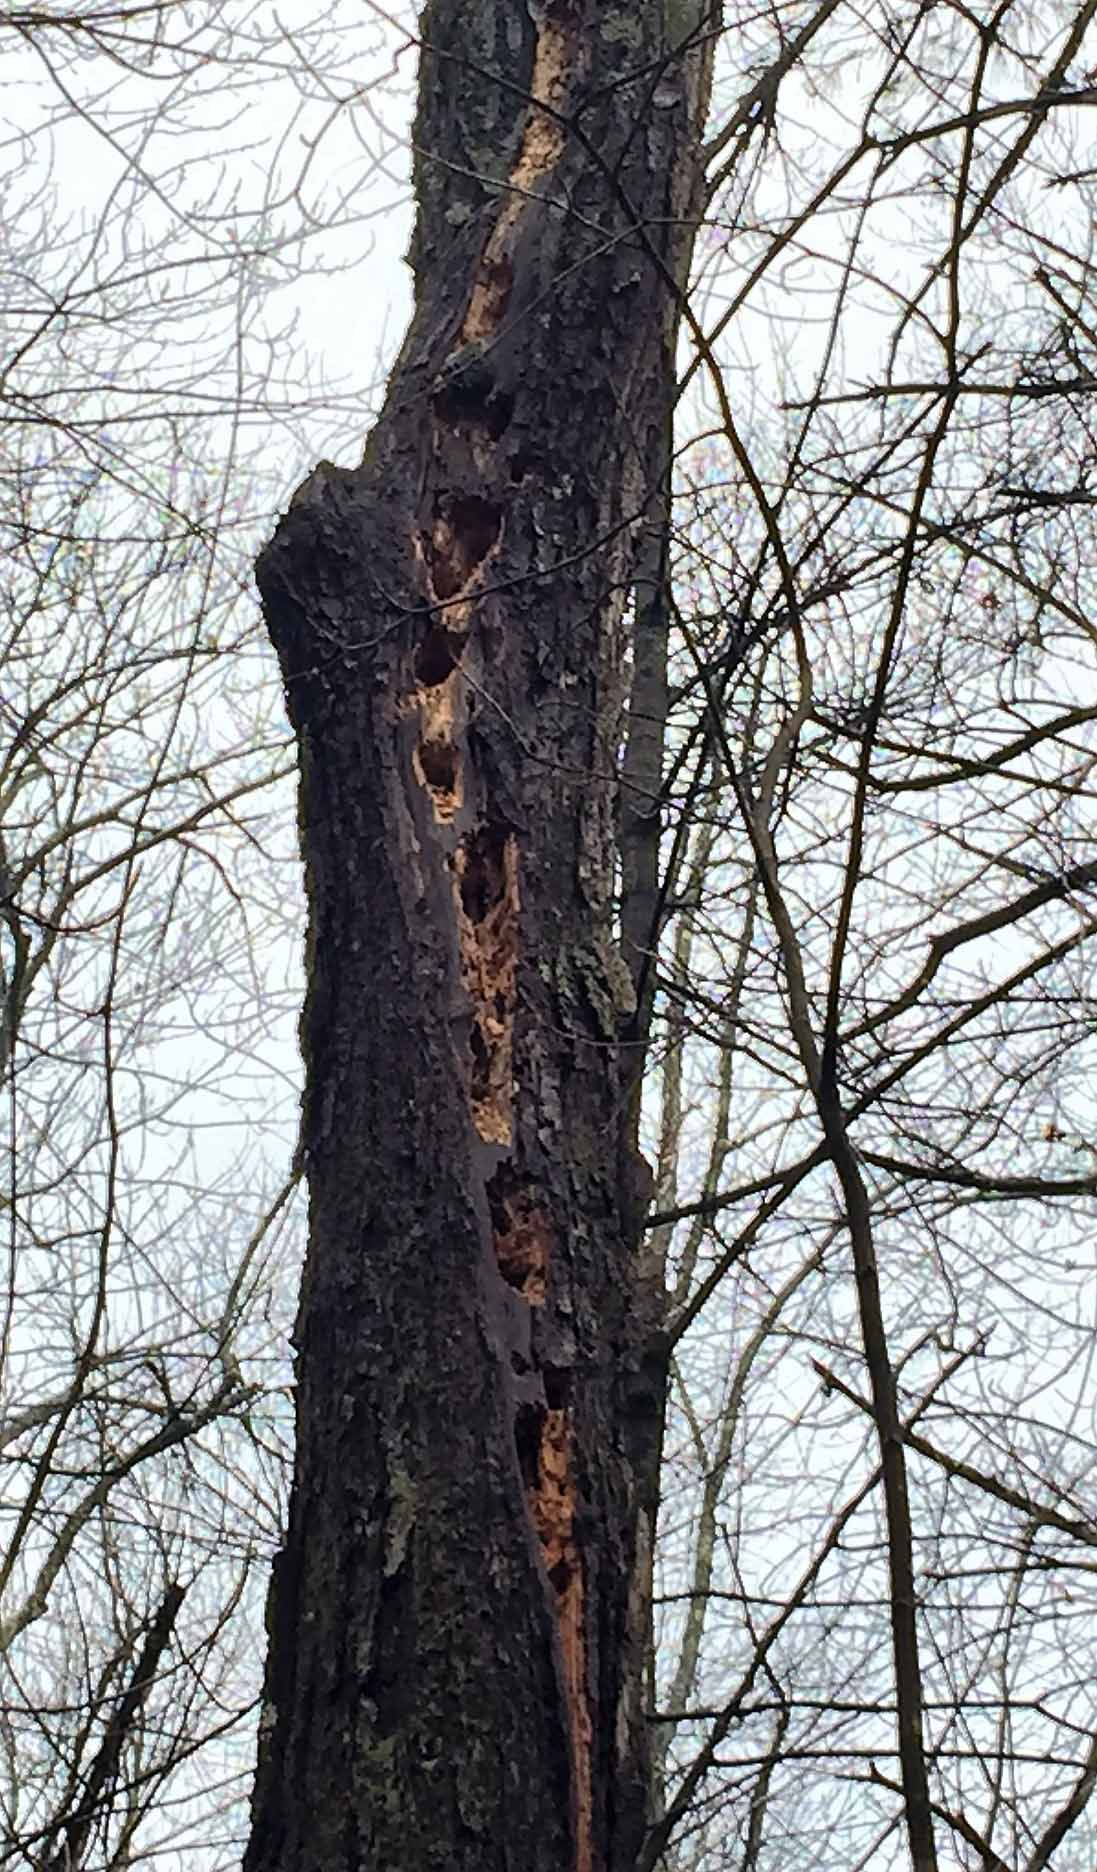 Holes made by Pileated Woodpecker